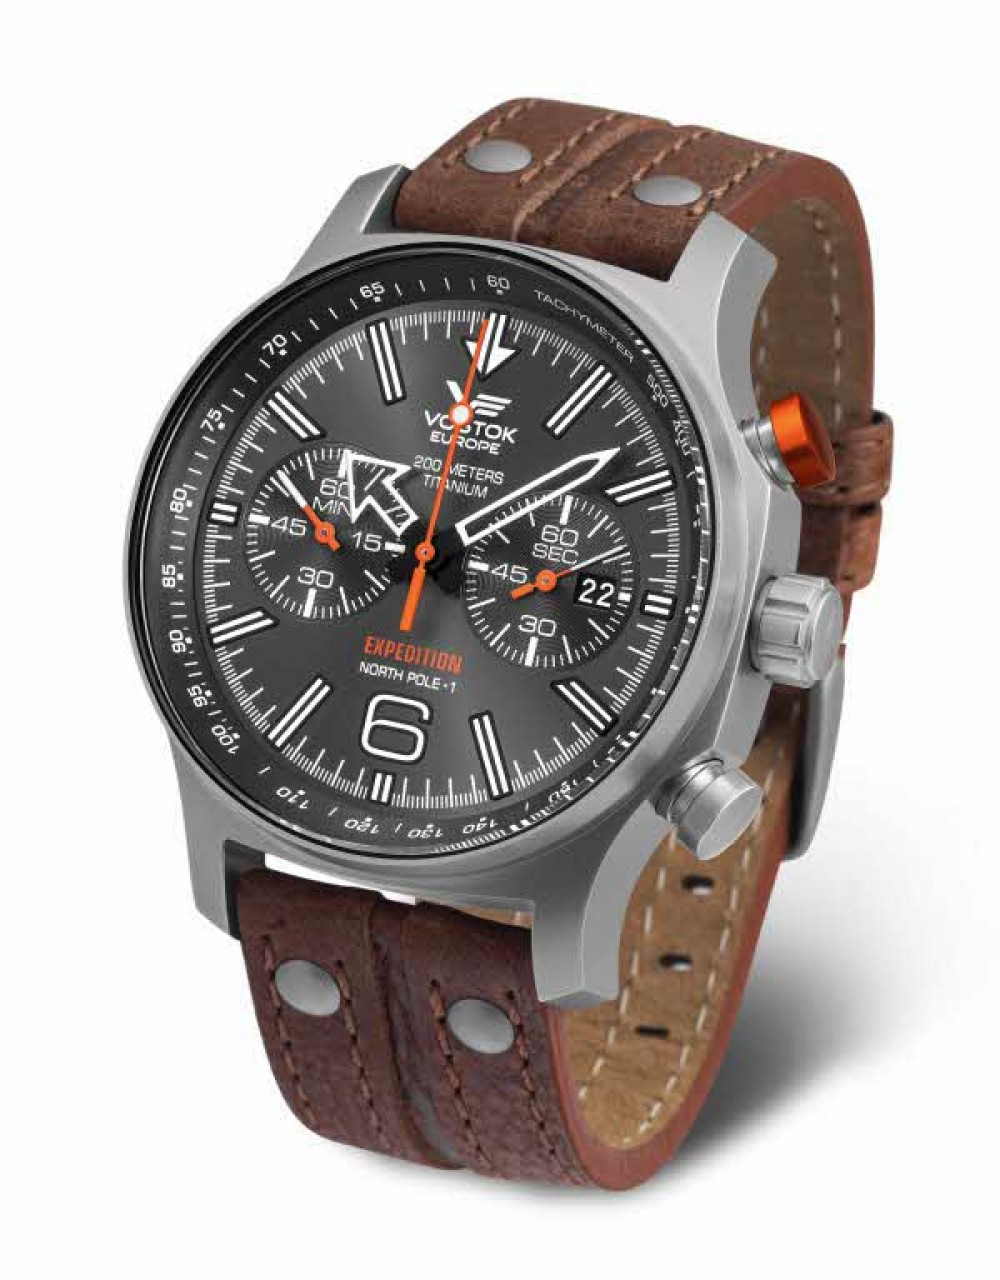 Vostok-Europe Expedition North Pole 6S21-595H298